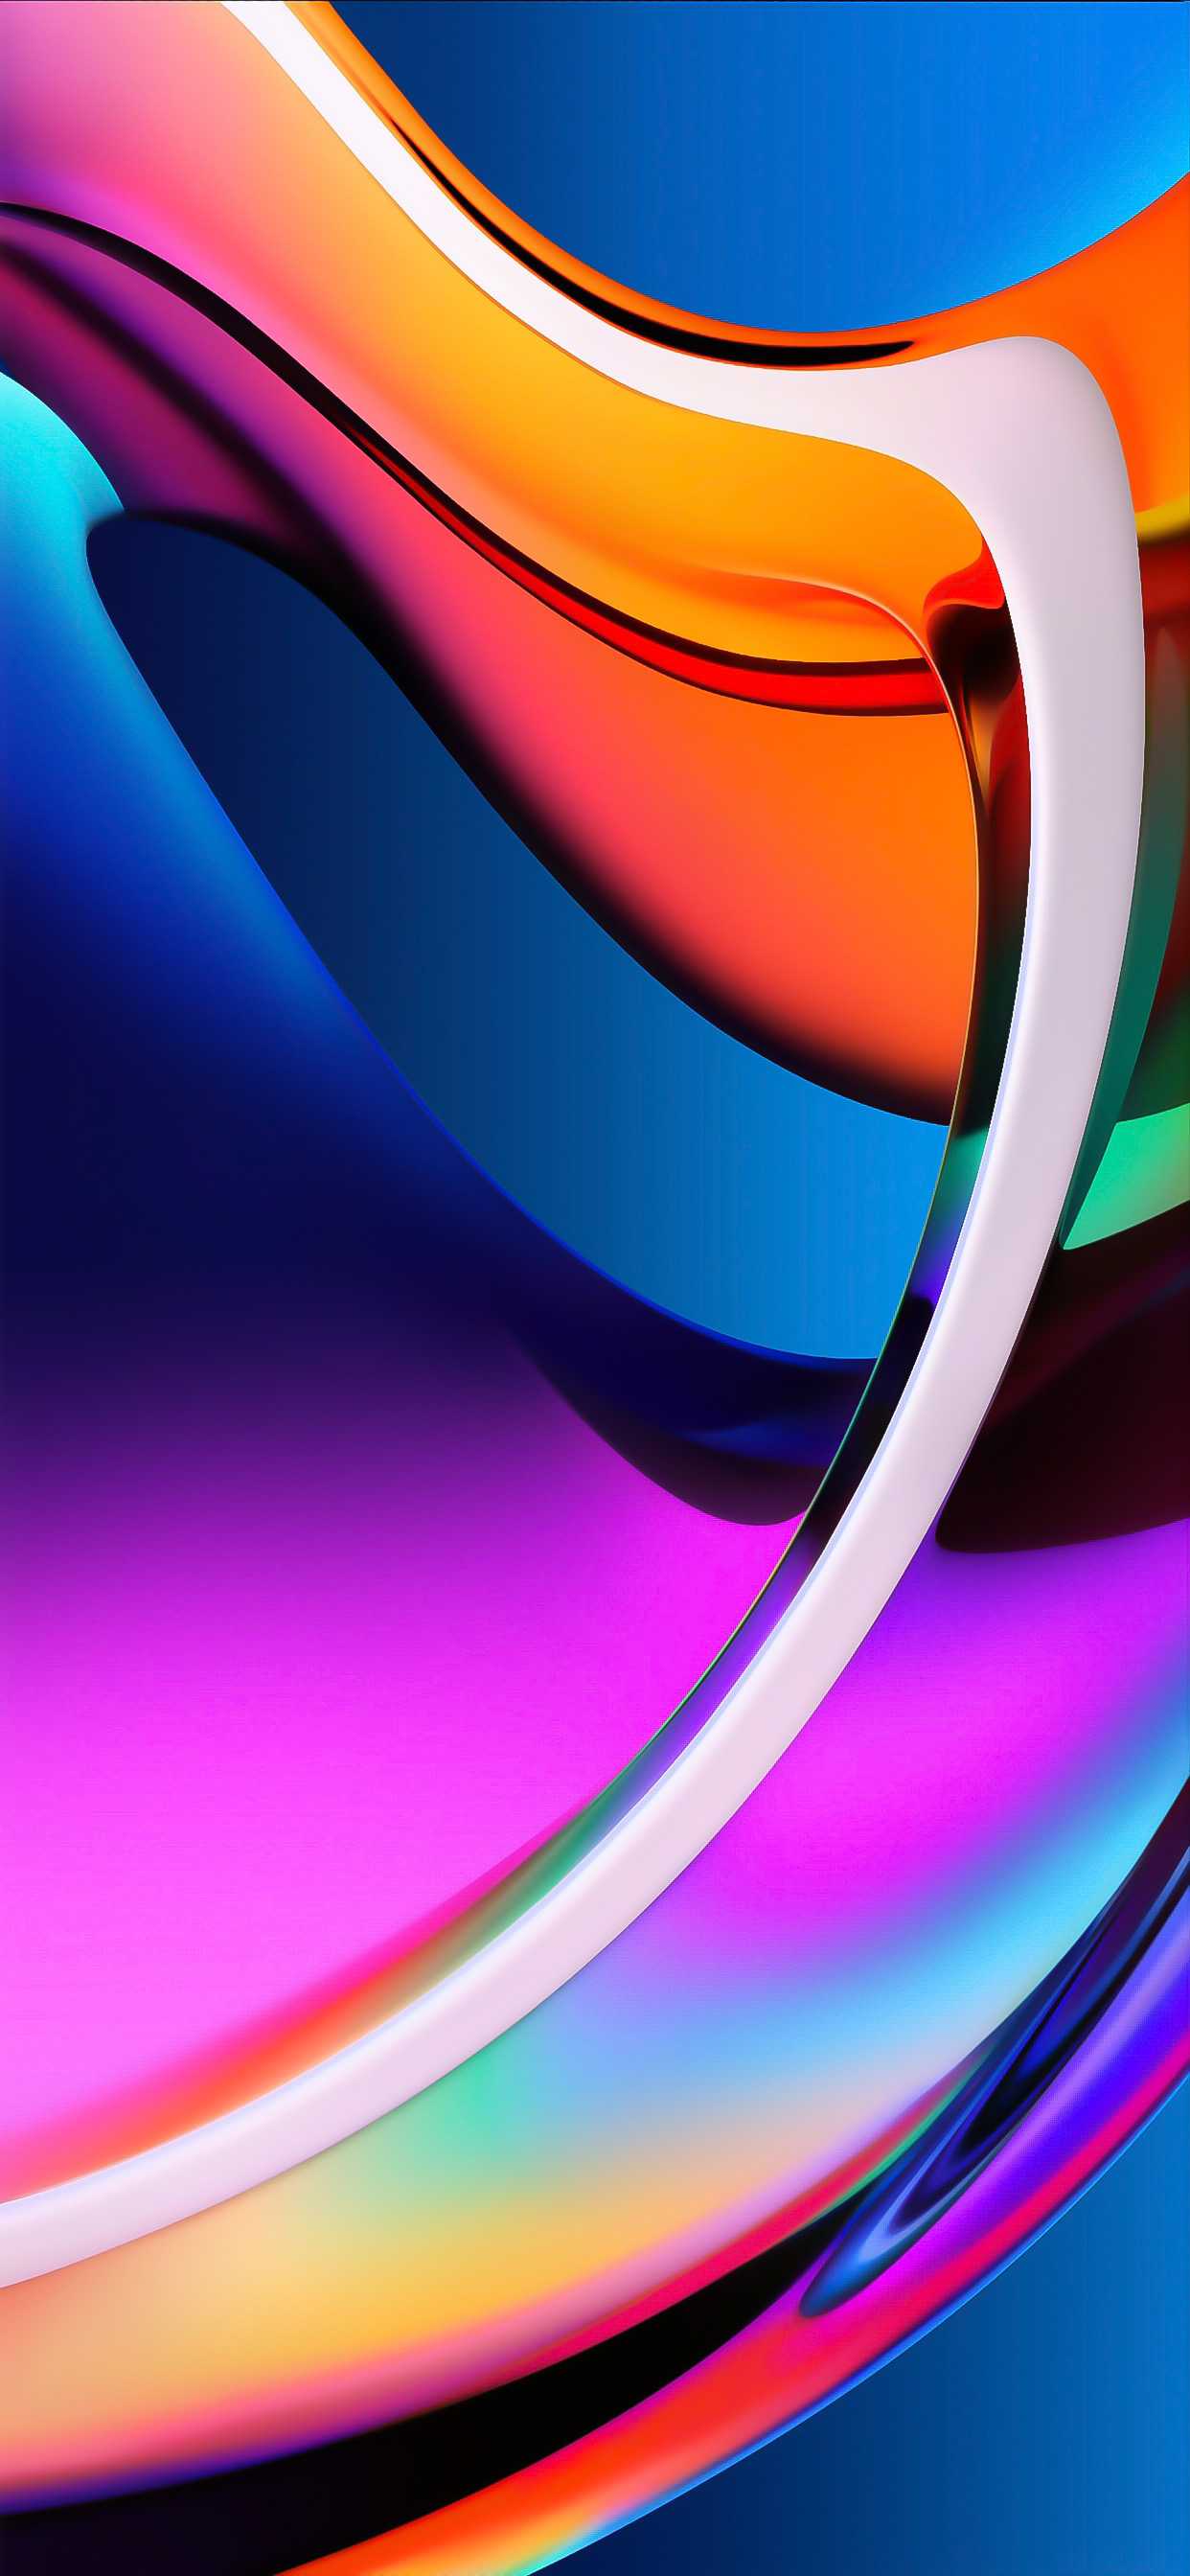 New iMac 27 wallpaper AR72014 iDownloadBlog iPhone